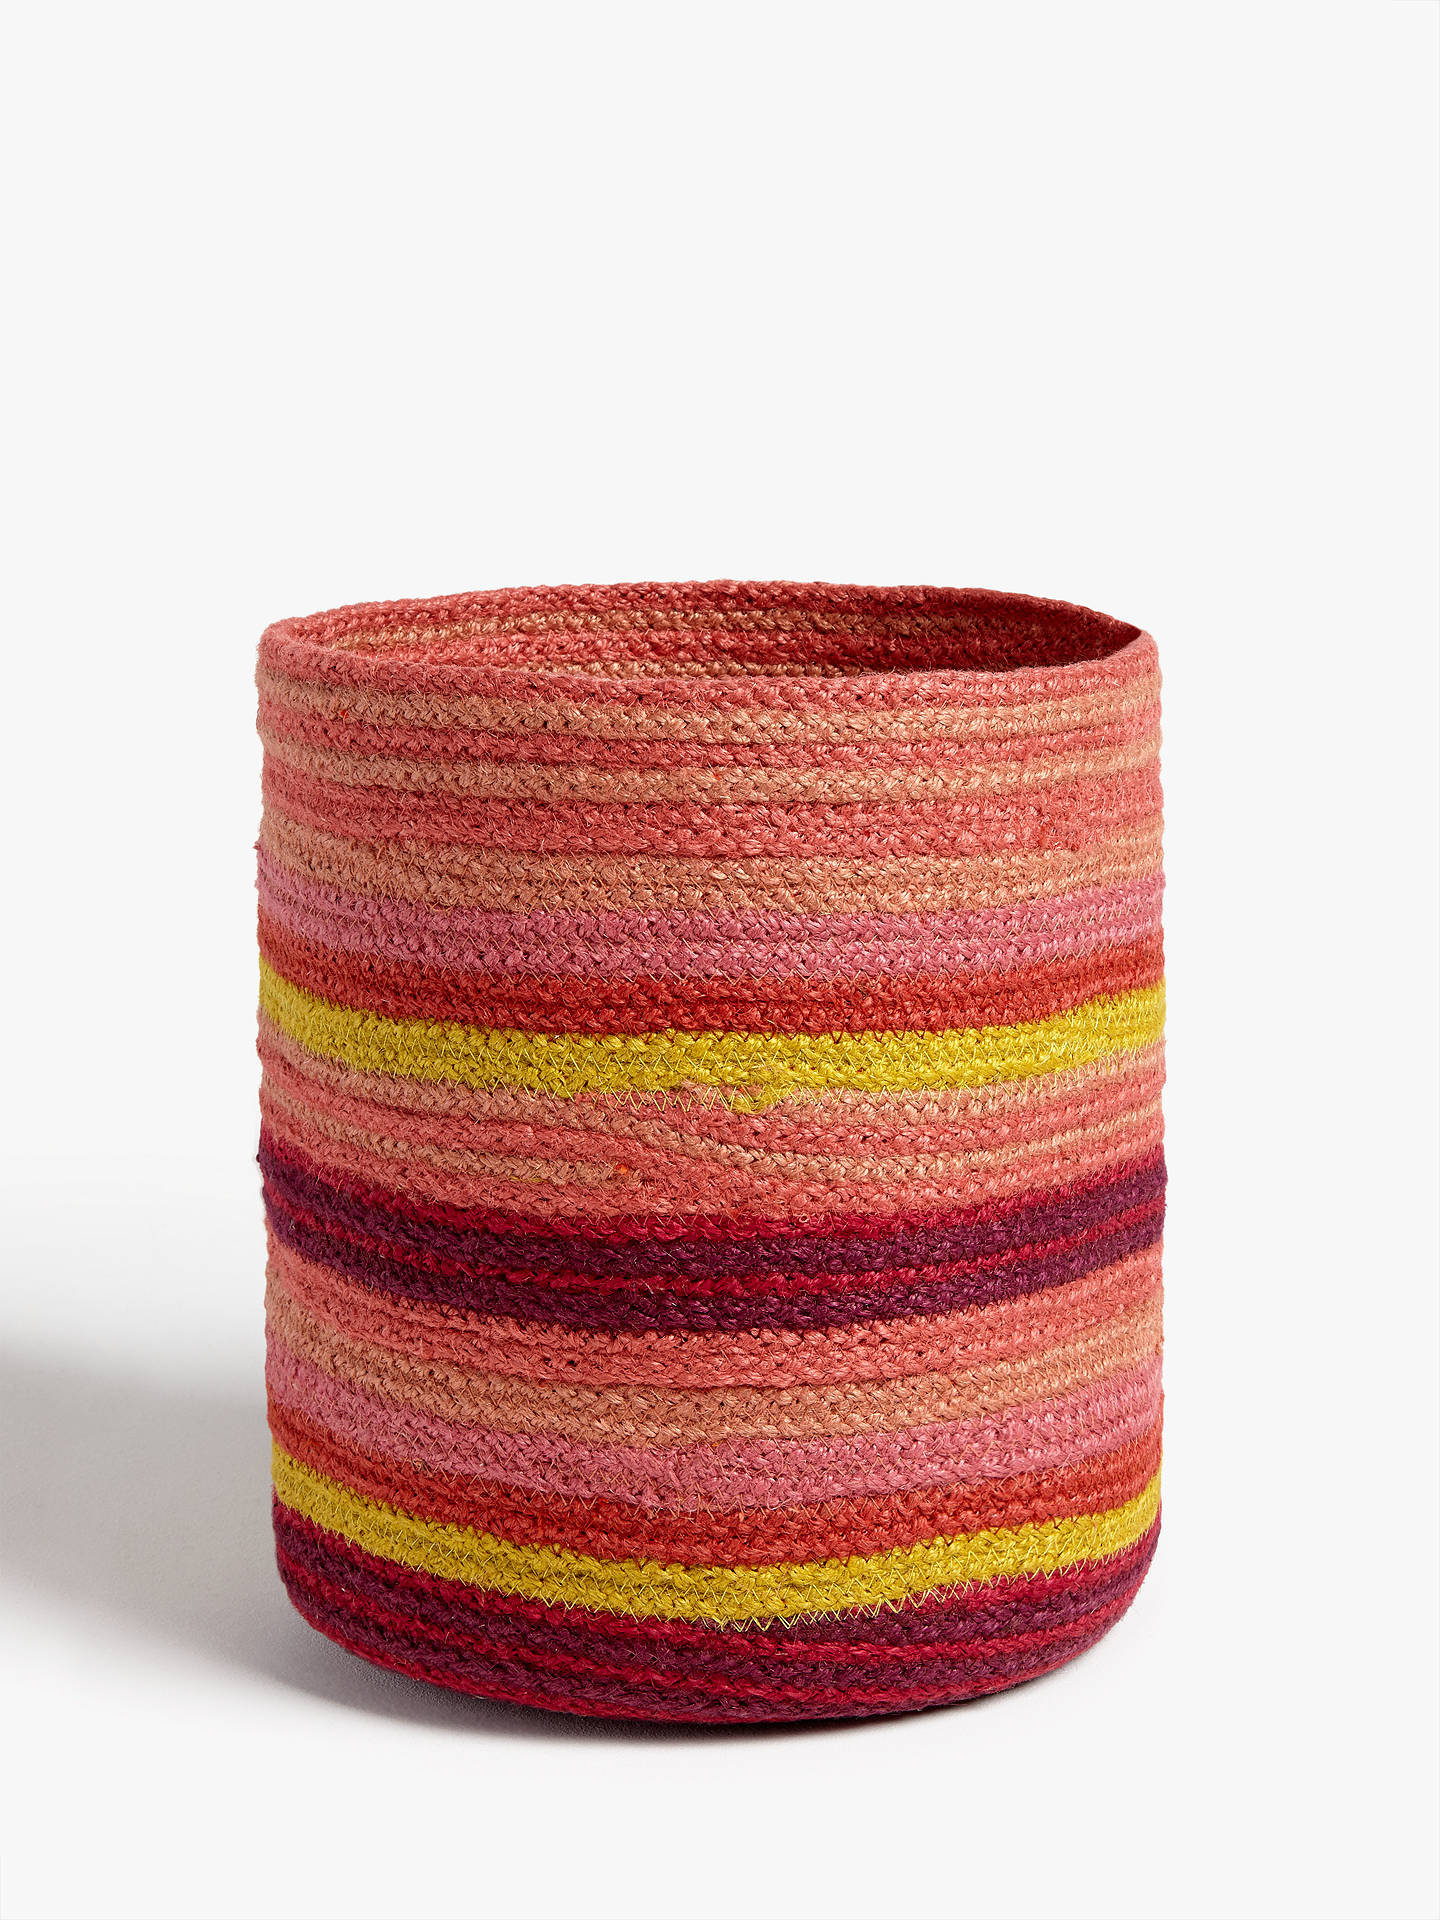 BuyJohn Lewis & Partners Fusion Jute Striped Storage Basket Online at johnlewis.com